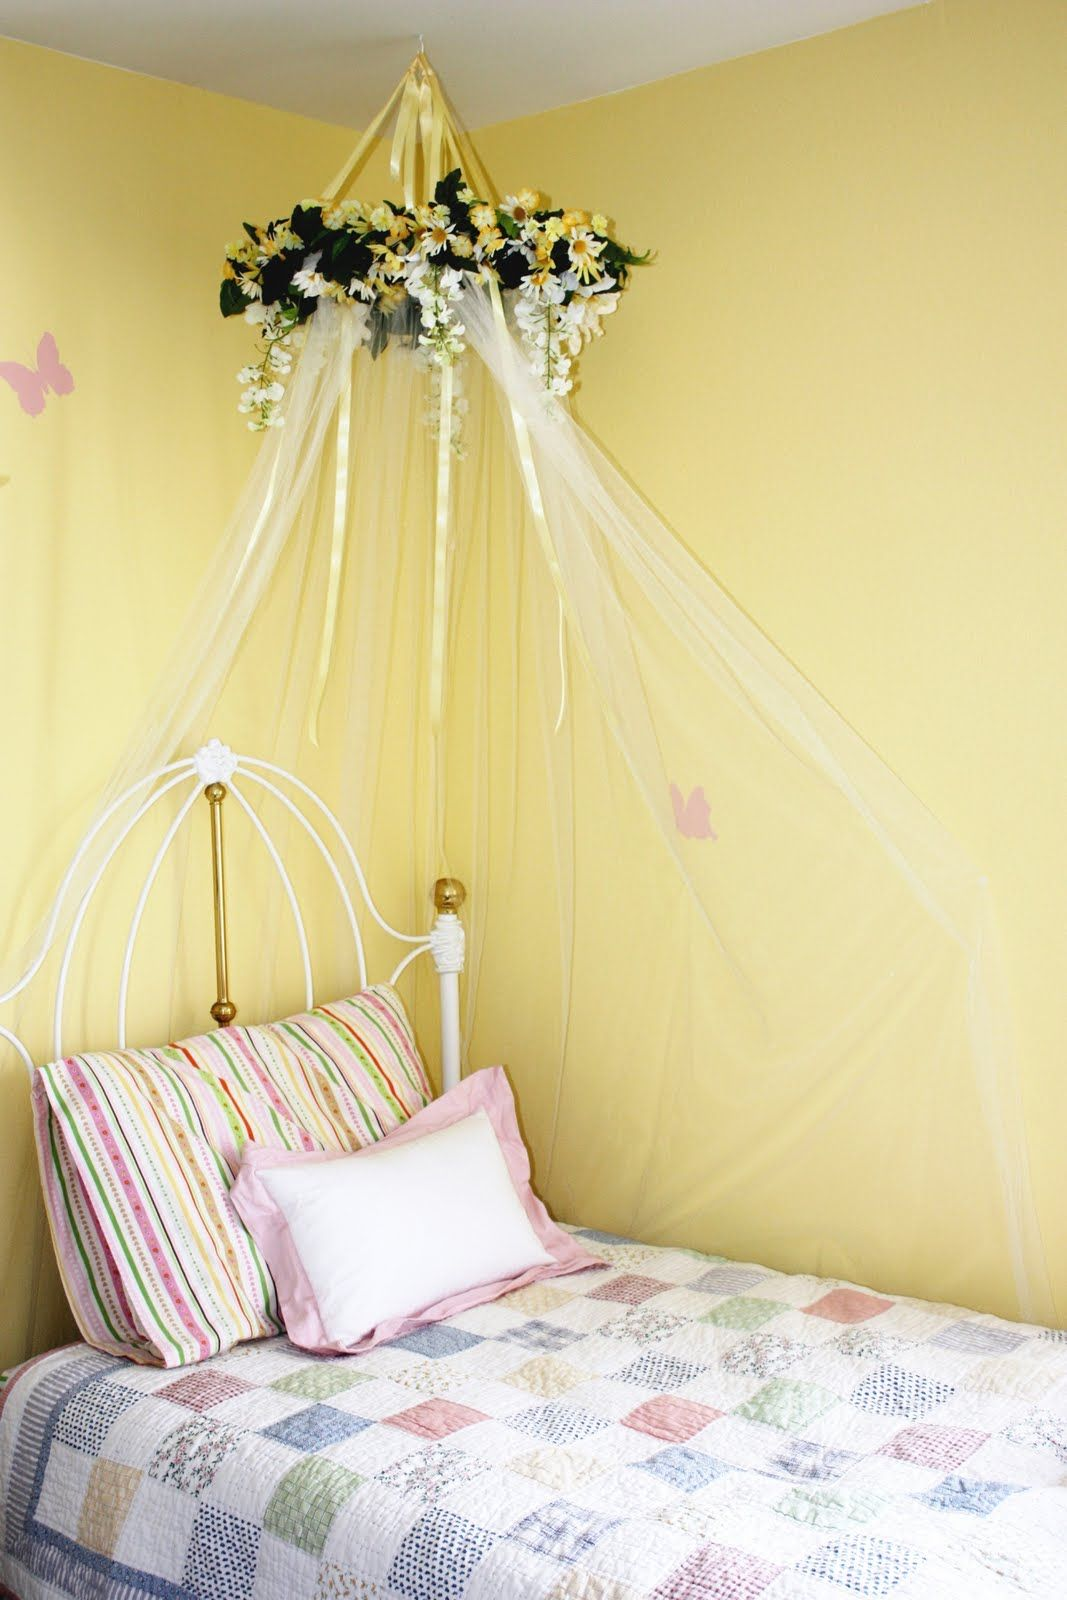 You can see here the diy girls canopy bed designs ideas